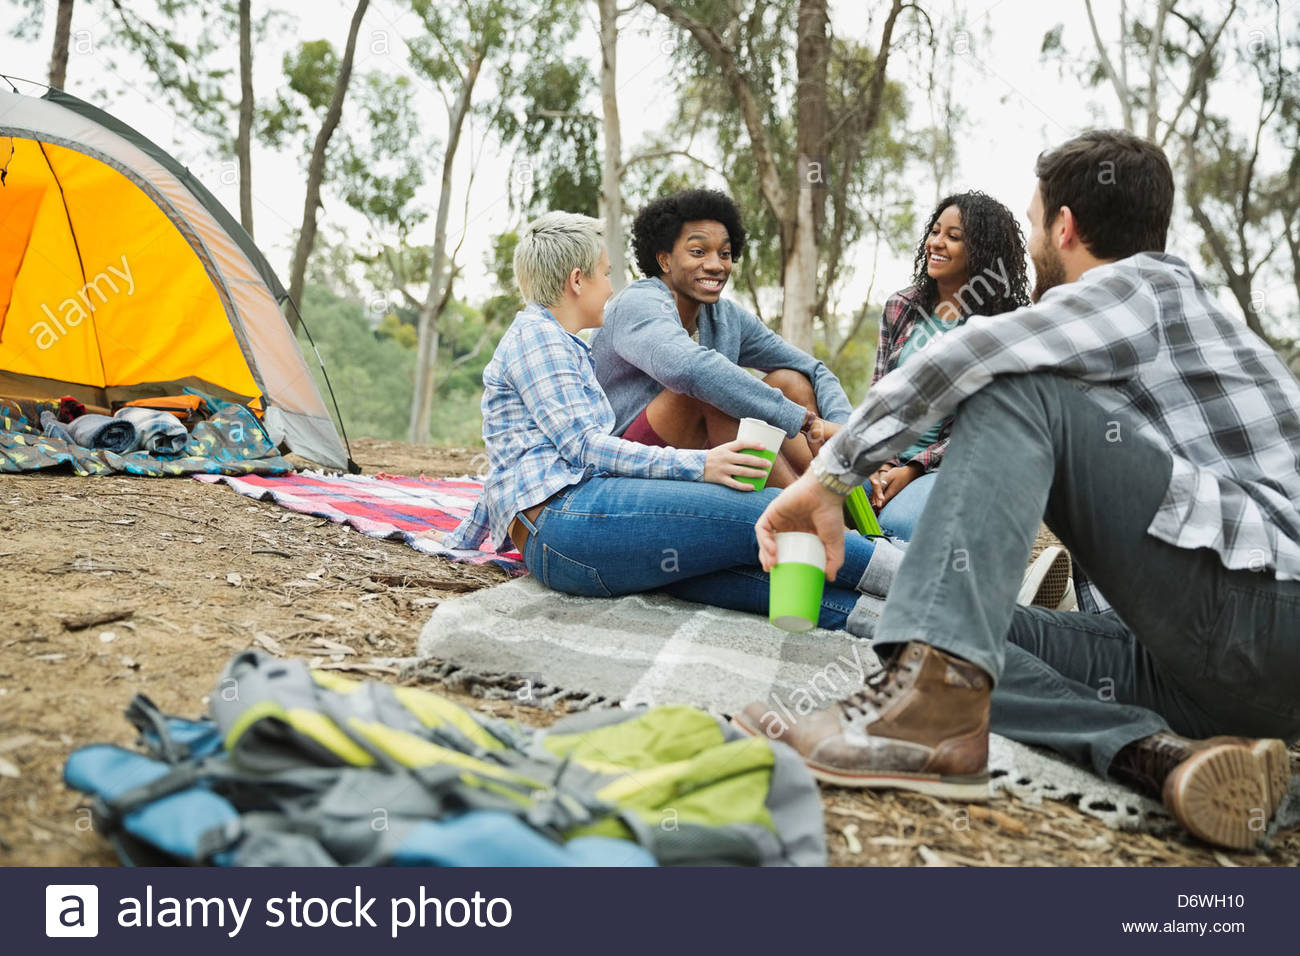 Friends talking while camping outdoors Stock Photo